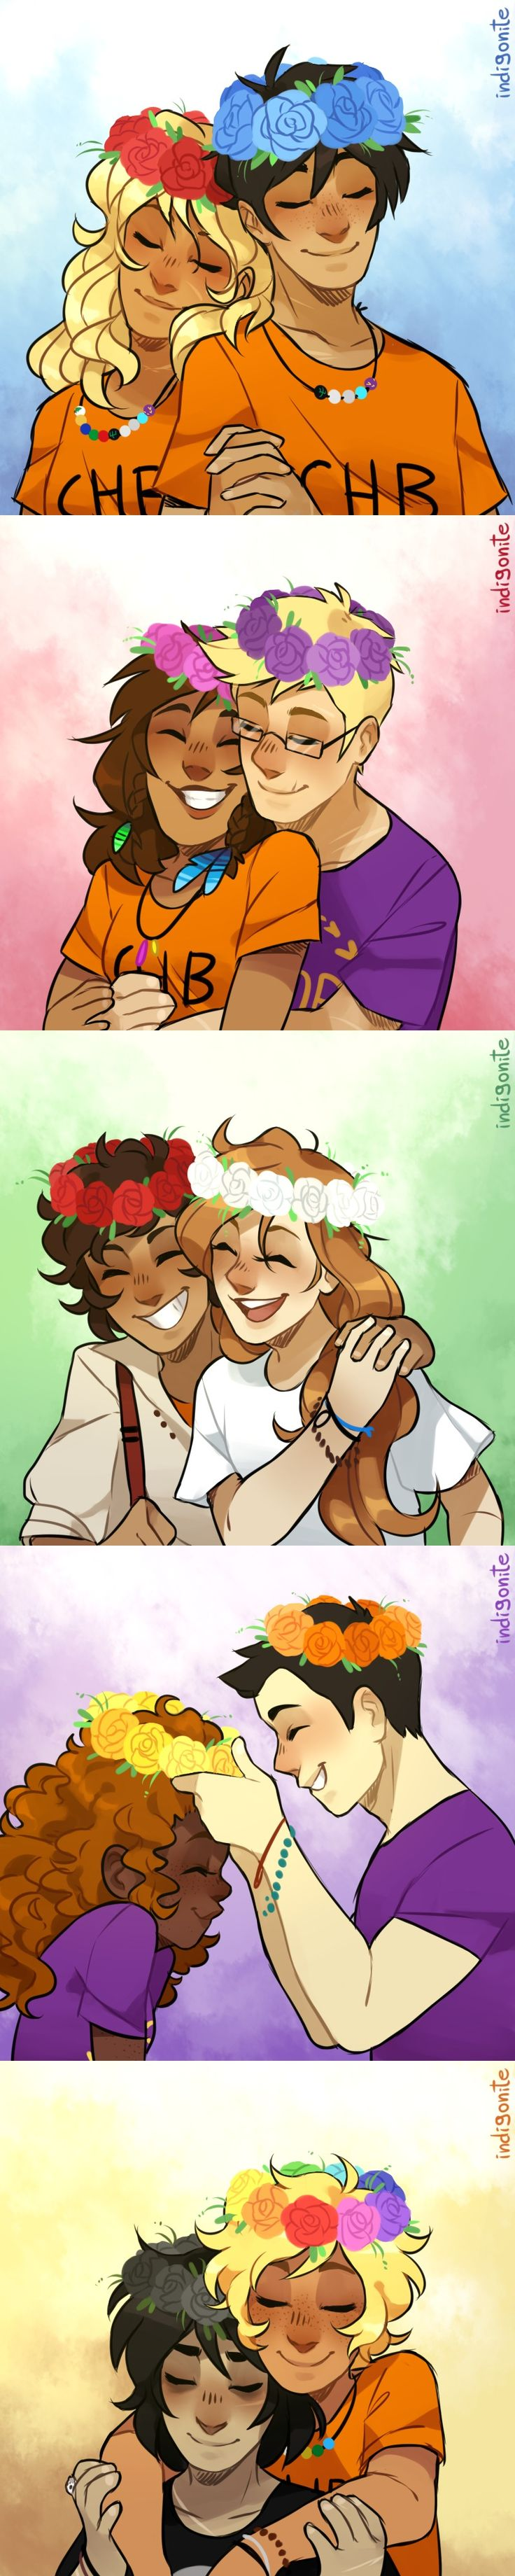 indigonite: A got a couple of solangelo and percabeth requests and I got a little bit carried away  Flower crowns for everyone!